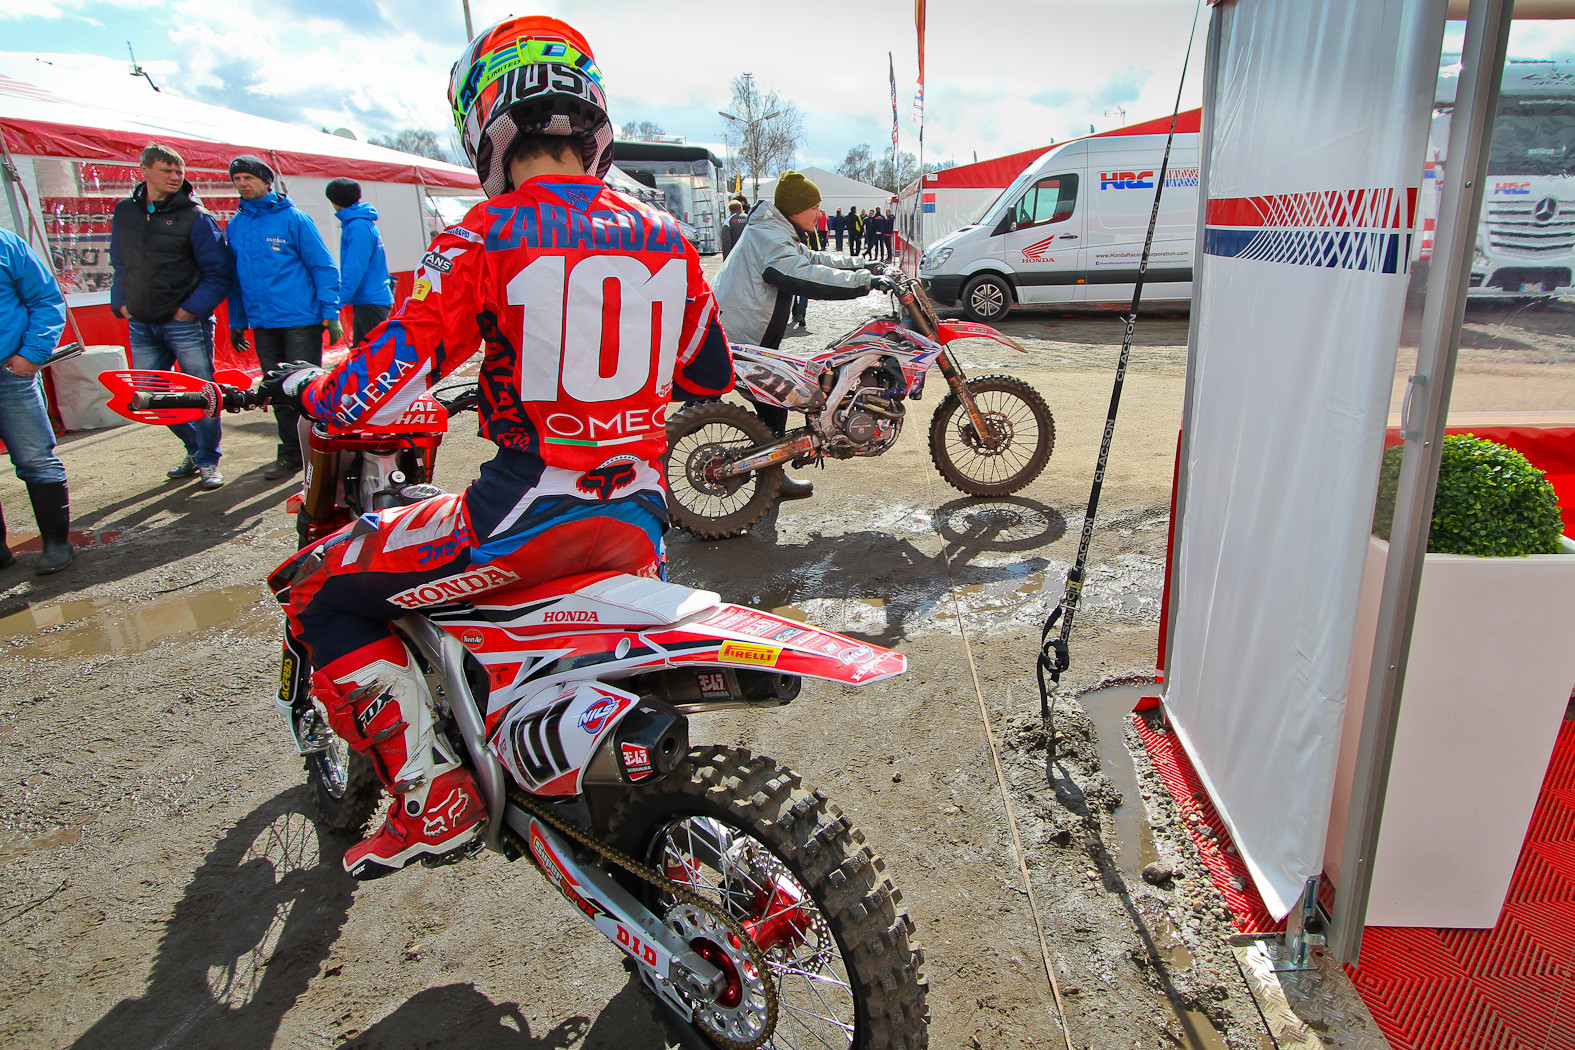 Jorge Zaragoza - In the Pits: MXGP of Europe - Motocross Pictures - Vital MX